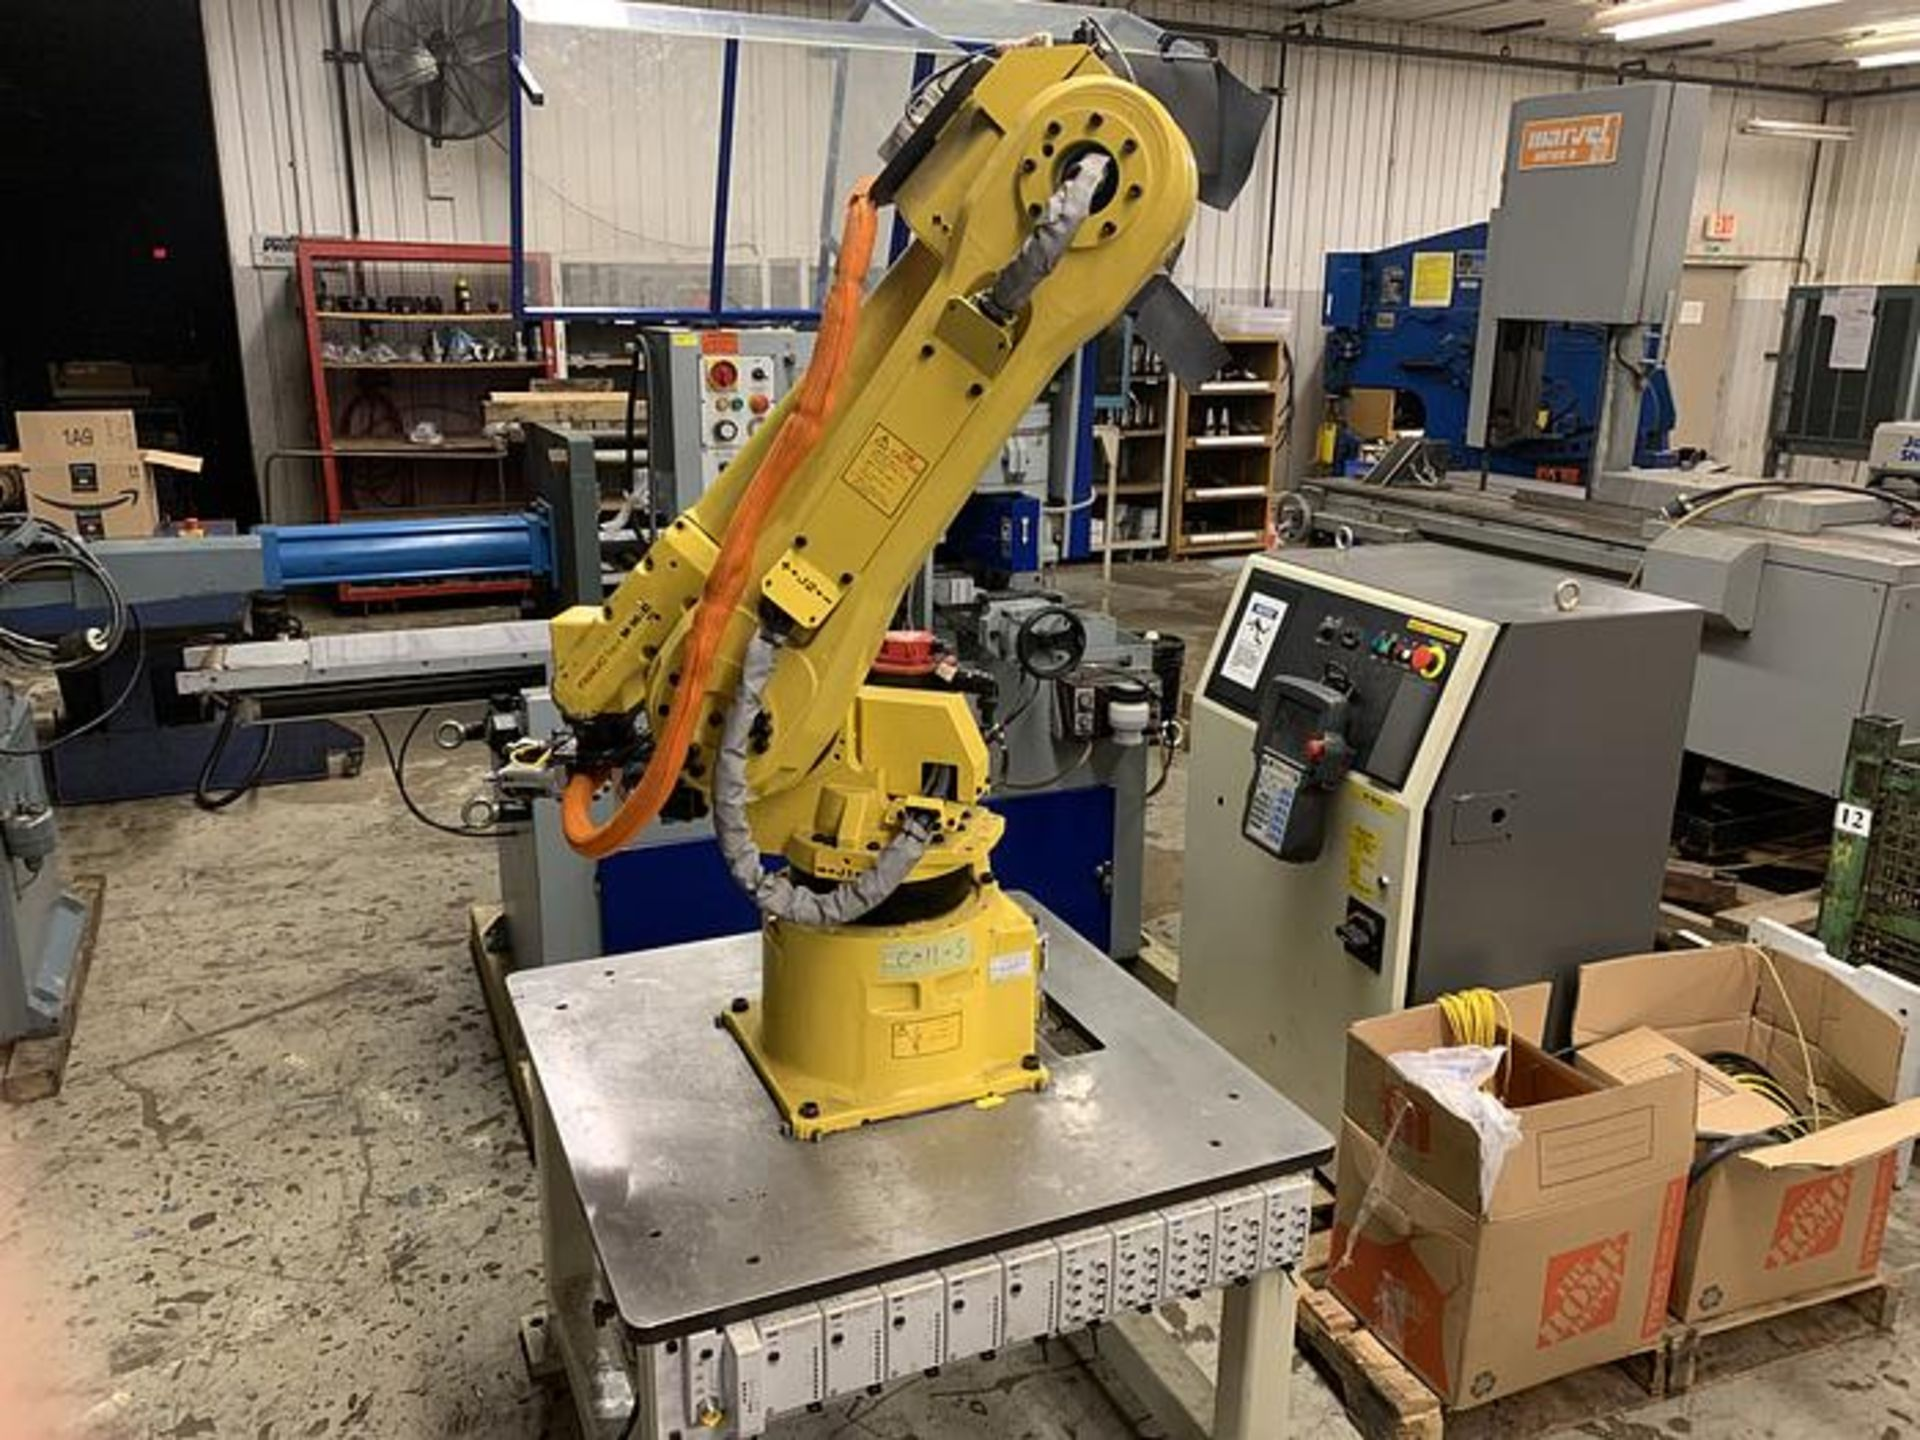 FANUC ROBOT M16iB/10L WITH RJ3iC (R30iA) CONTROLLER, TEACH & CABLES, YEAR 2006, SN 80306 - Image 2 of 17